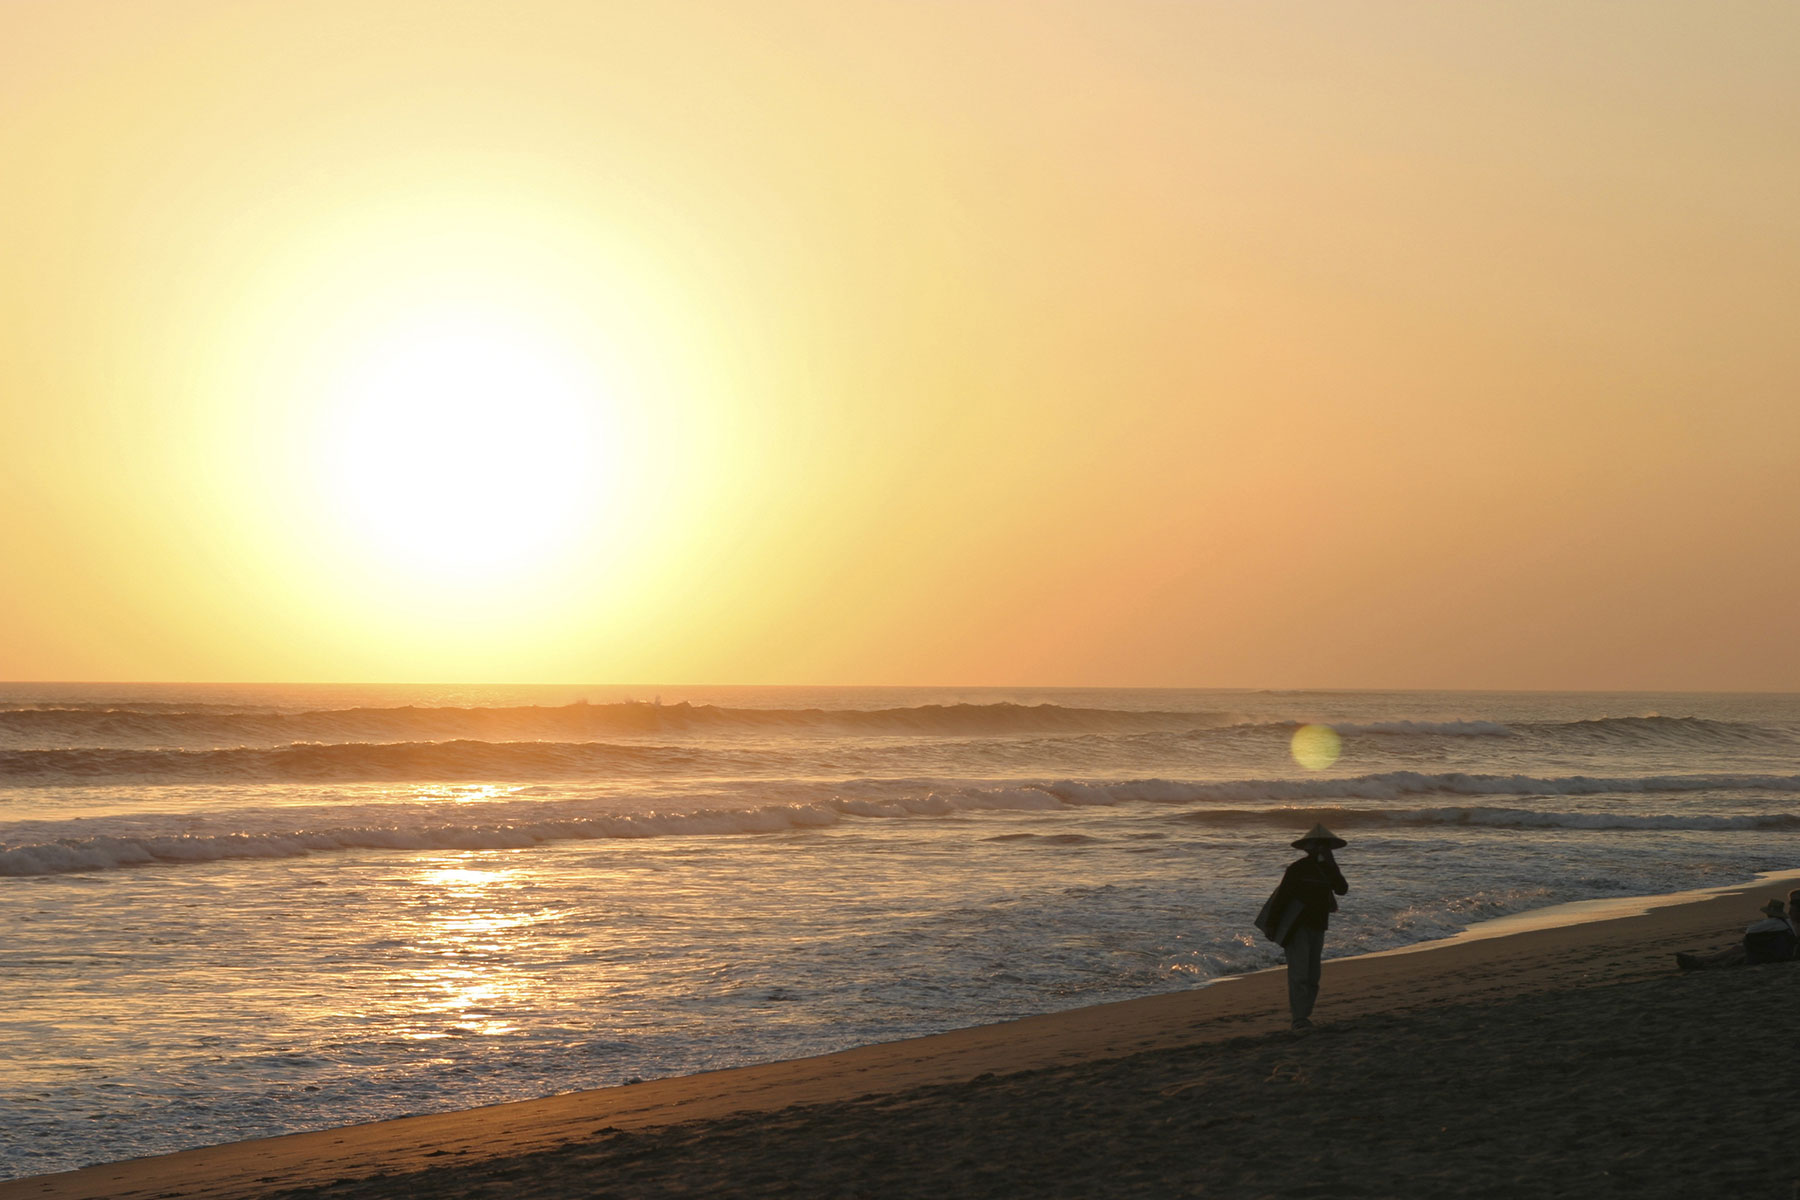 Man walking on empty beach at sunset in Indonesia